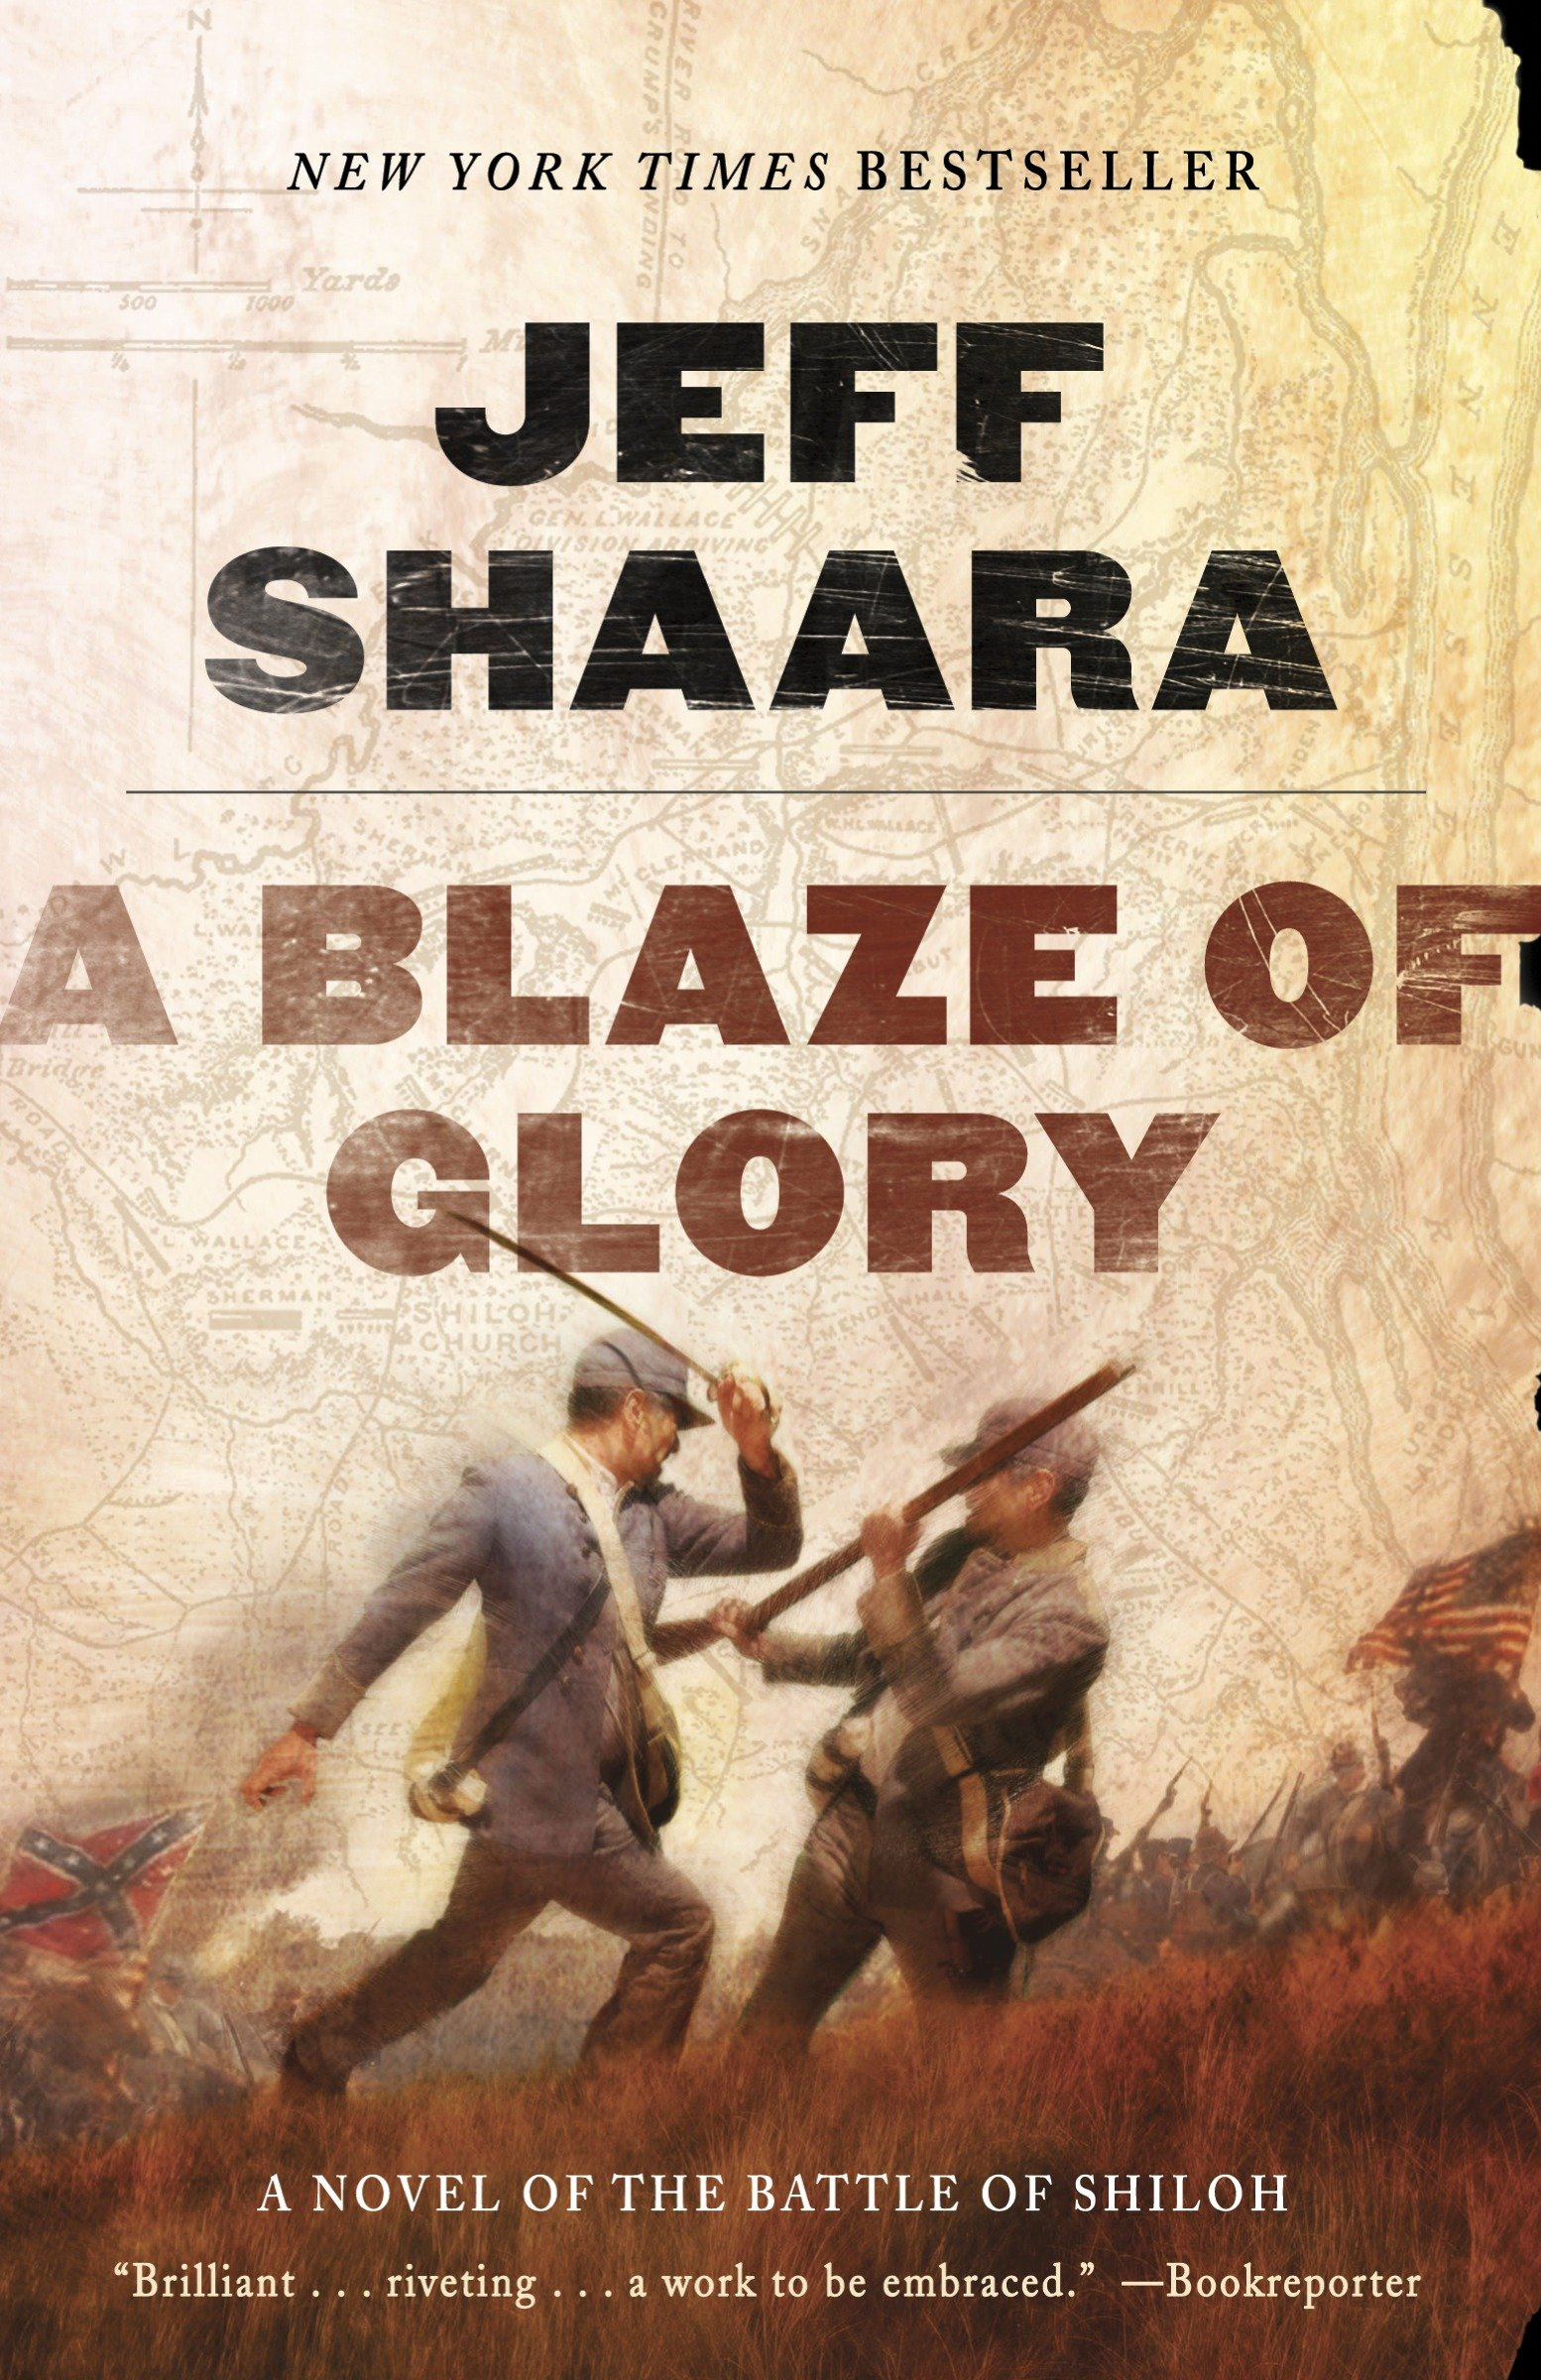 A blaze of glory a novel of the Battle of Shiloh cover image